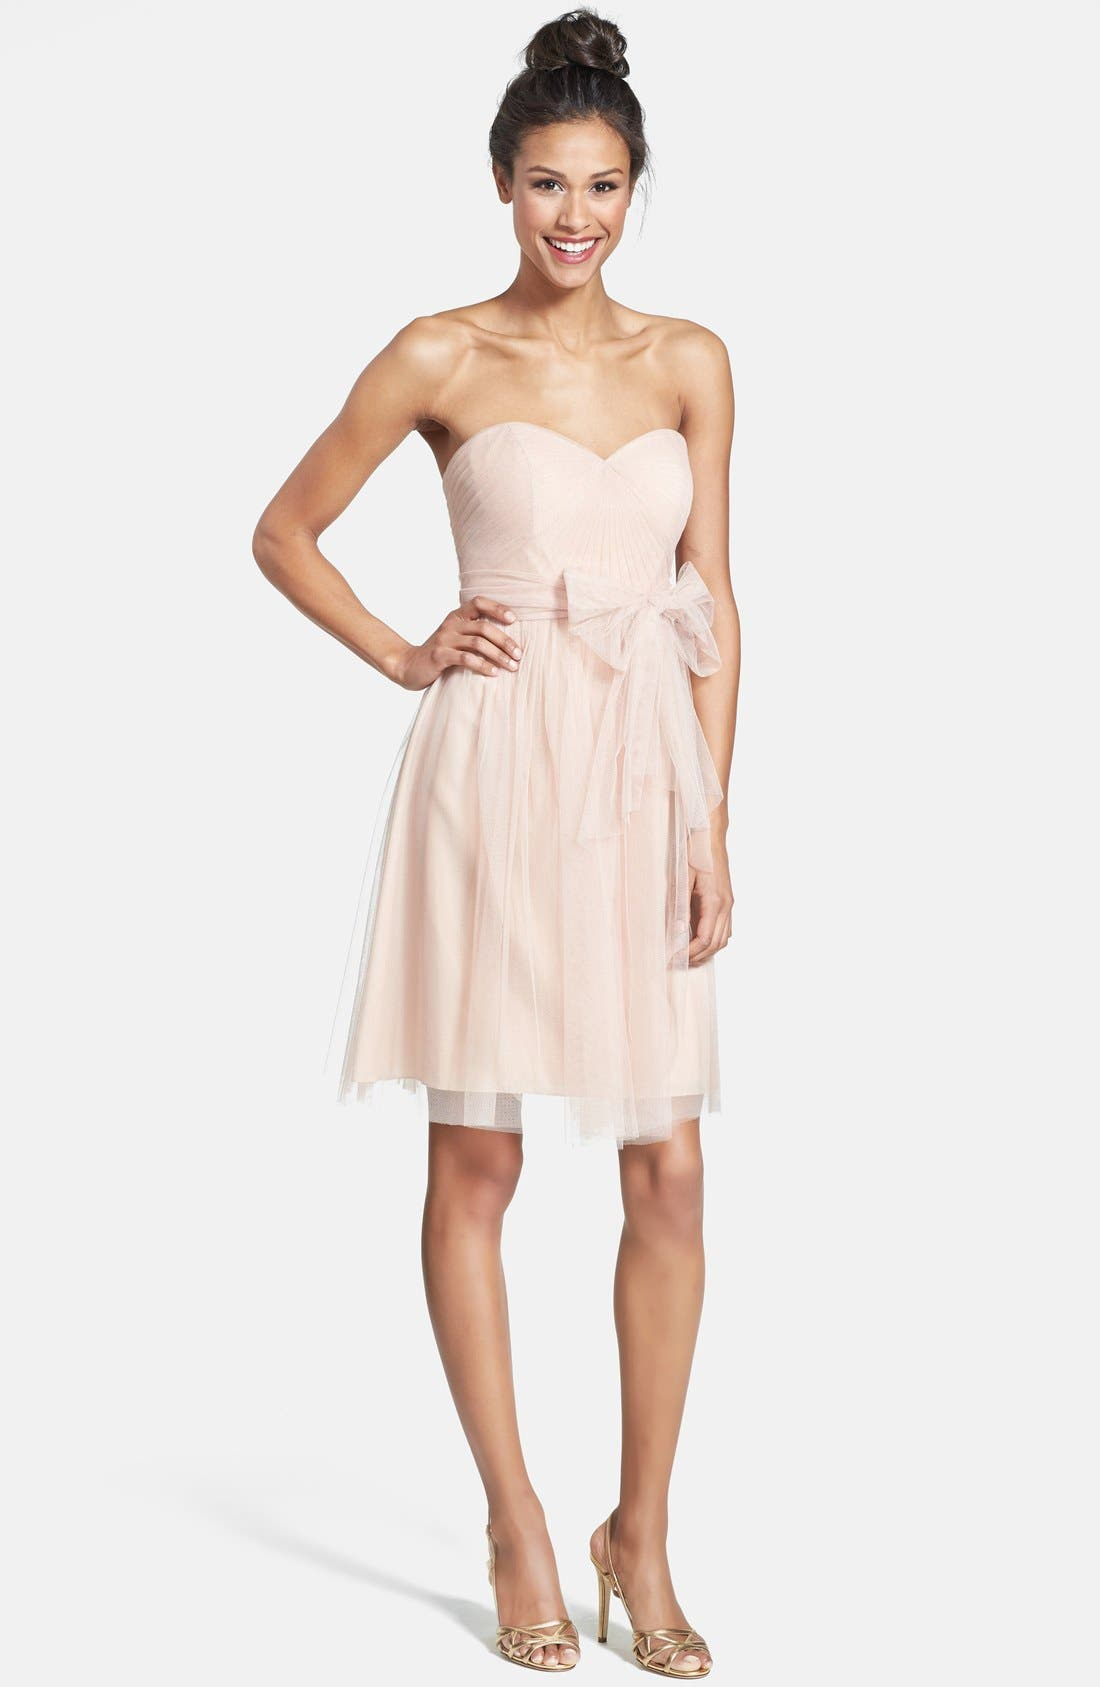 Alternate Image 1 Selected - Jenny Yoo 'Wren' Convertible Tulle Fit & Flare Dress